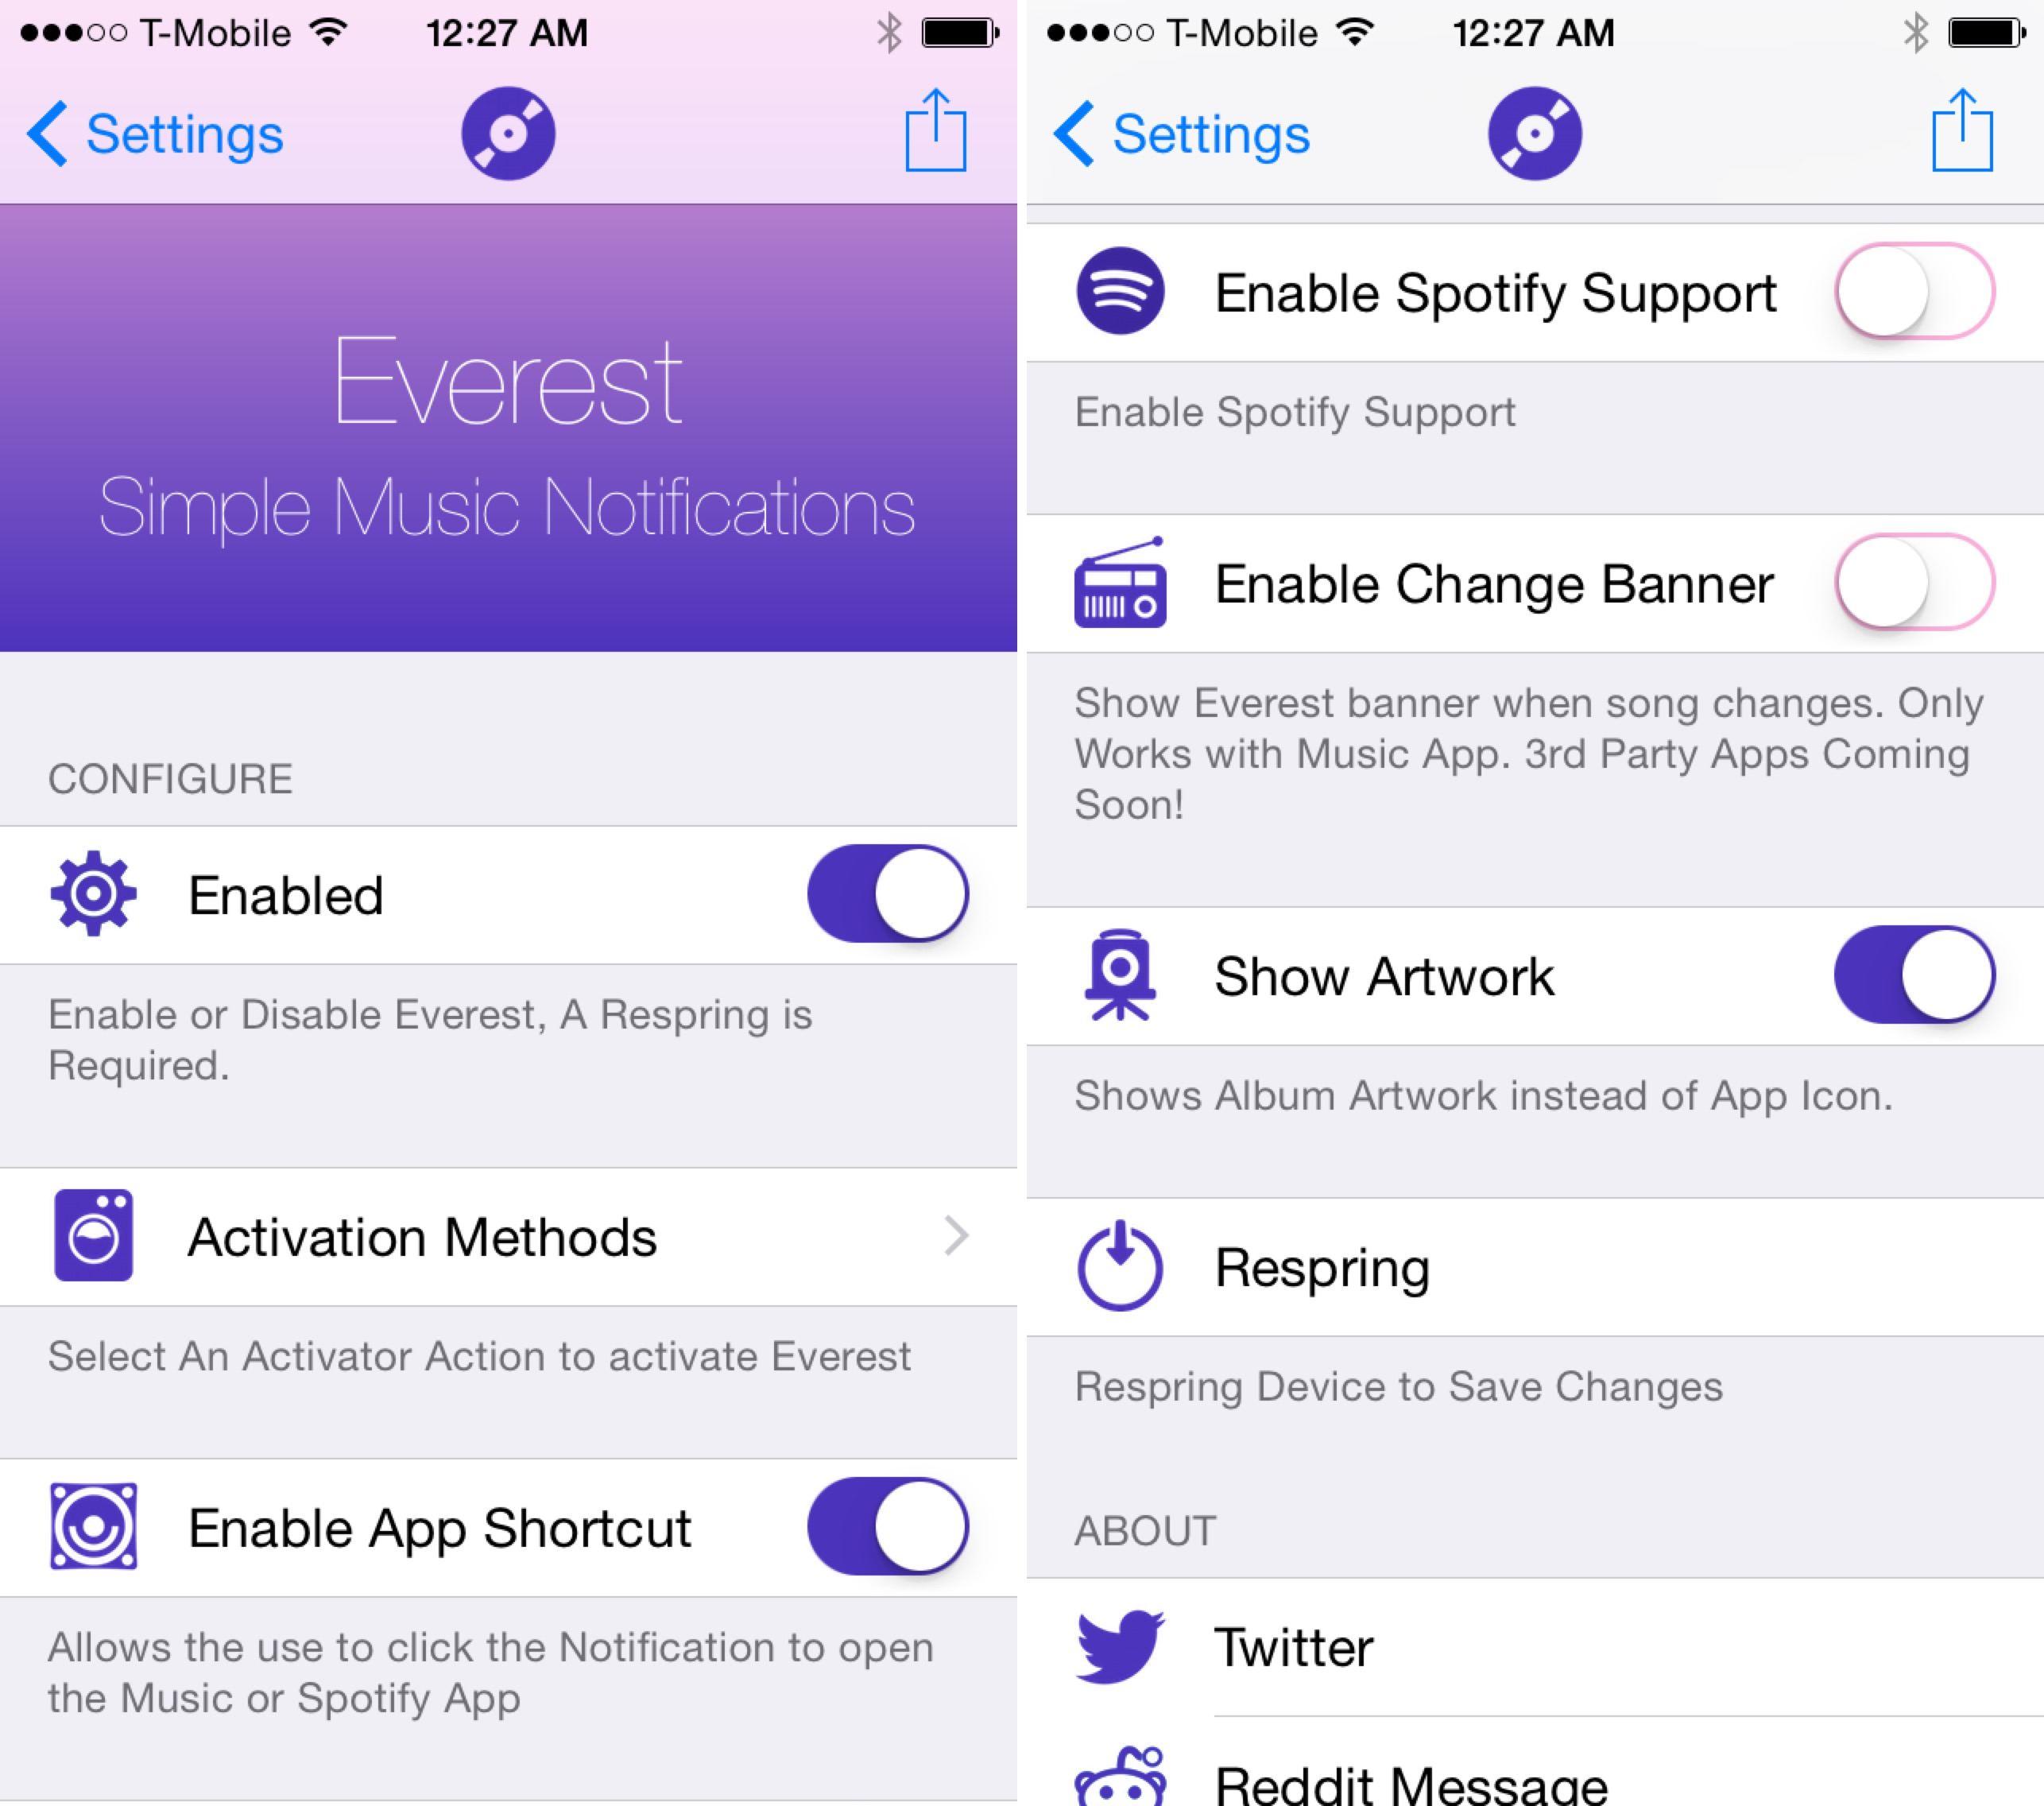 Everest Settings App